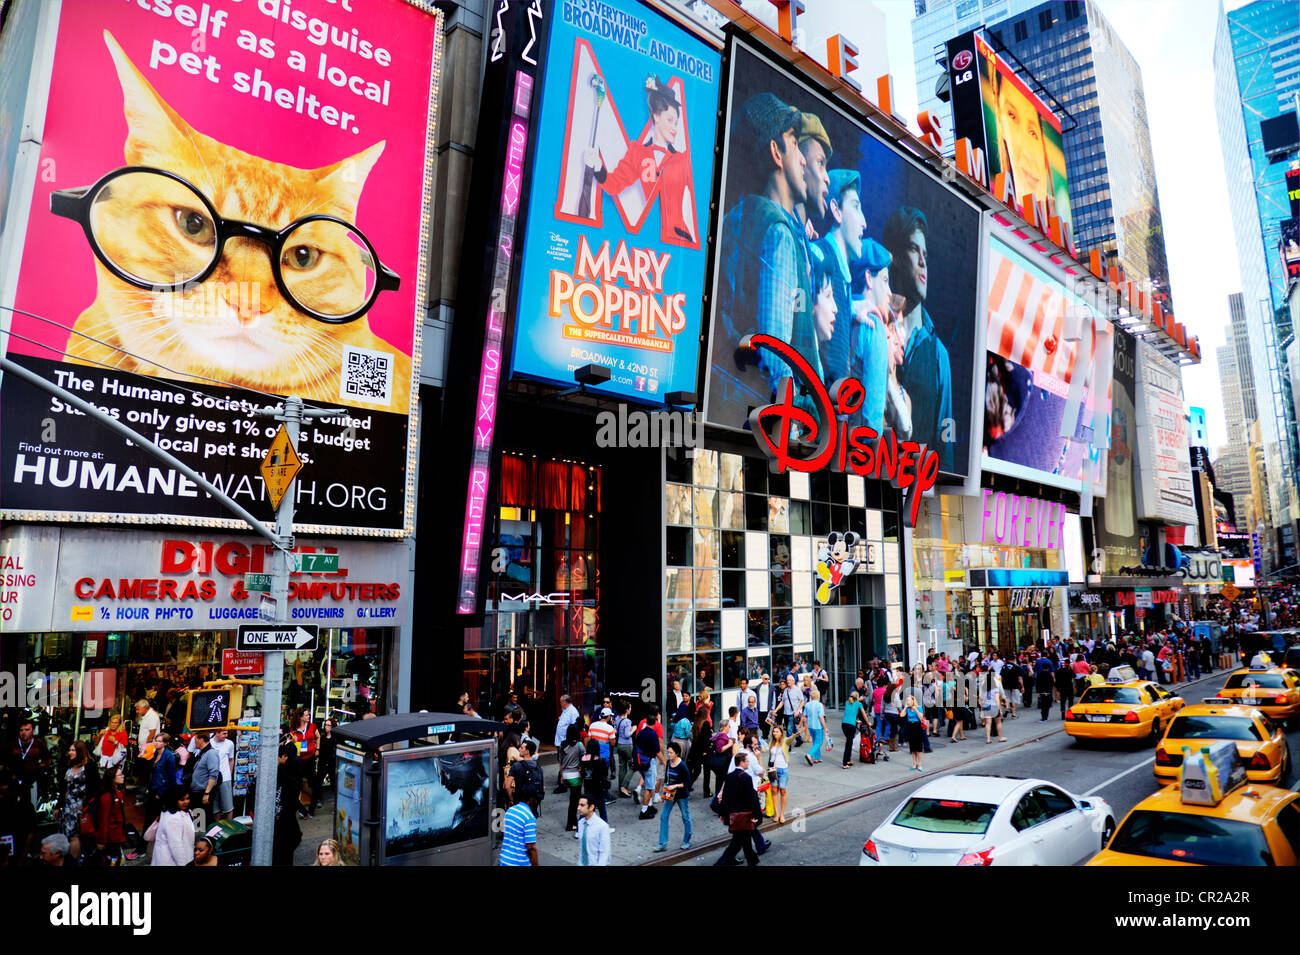 Iconic New York yellow taxis in Times Square, Manhattan. Advertising boards for shows above Disney store Times square Stock Photo